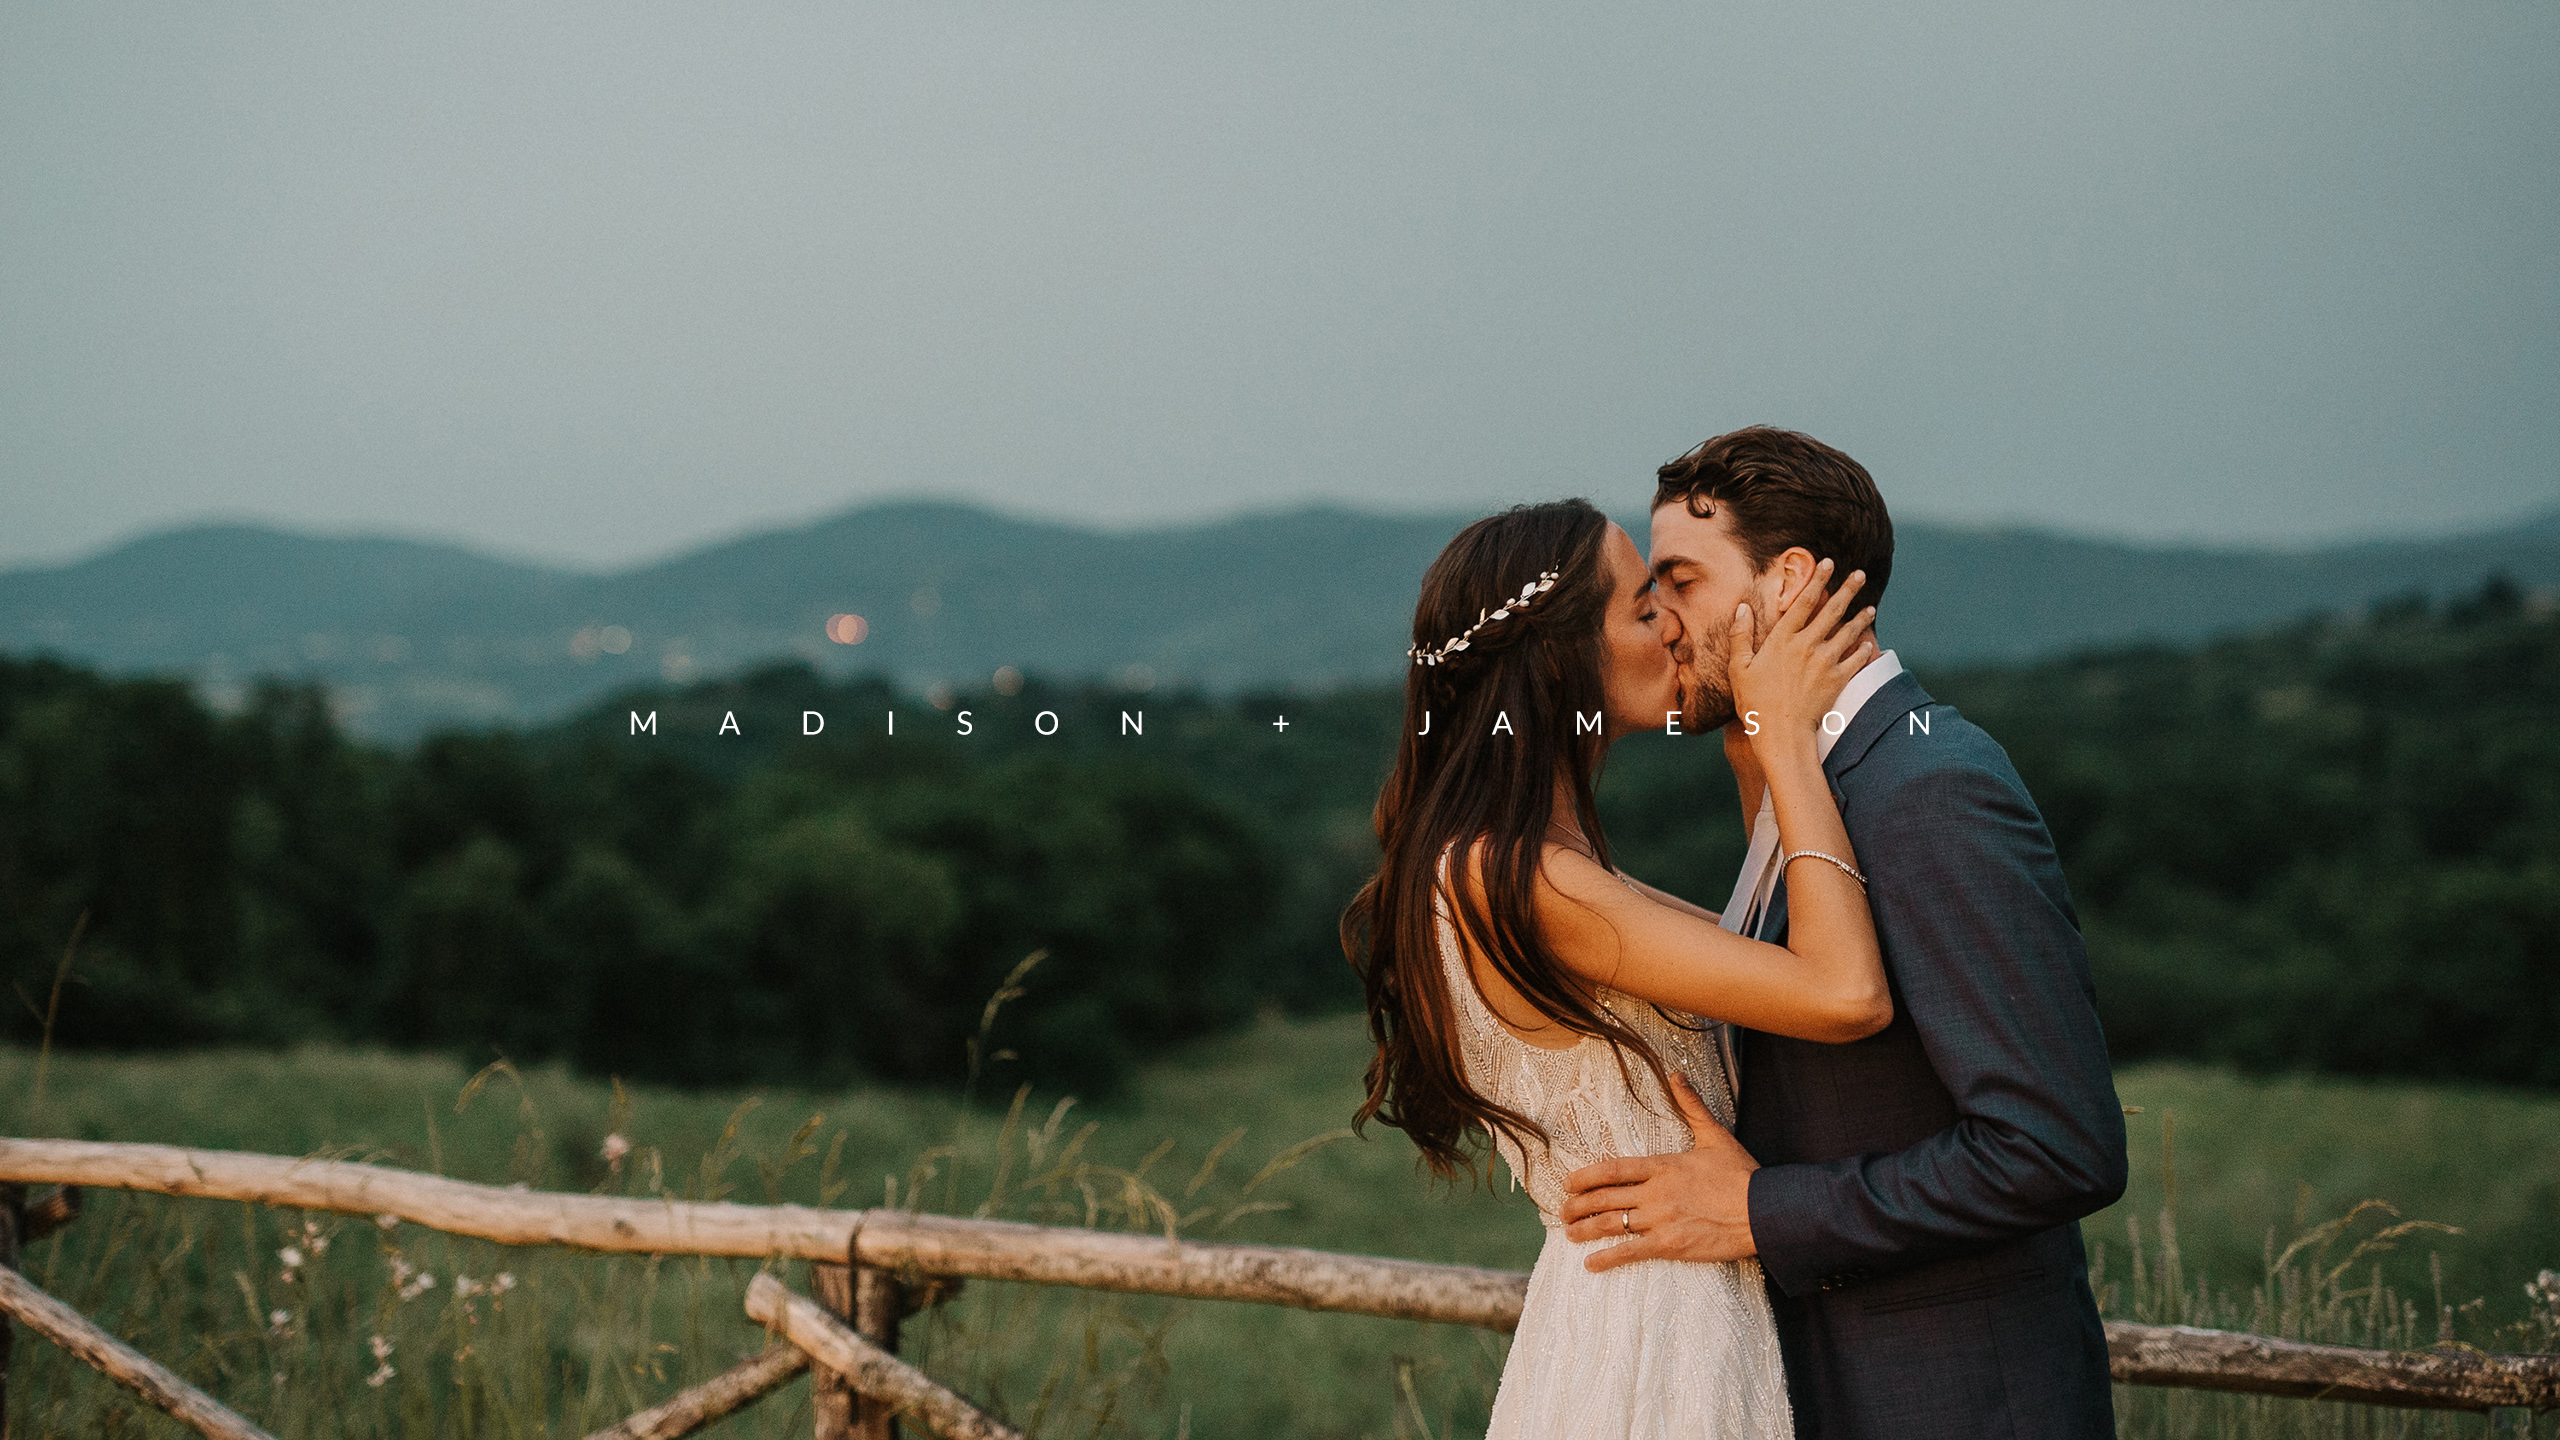 Madison + Jameson | Umbria, Italy | I Casali di Colle San Paolo